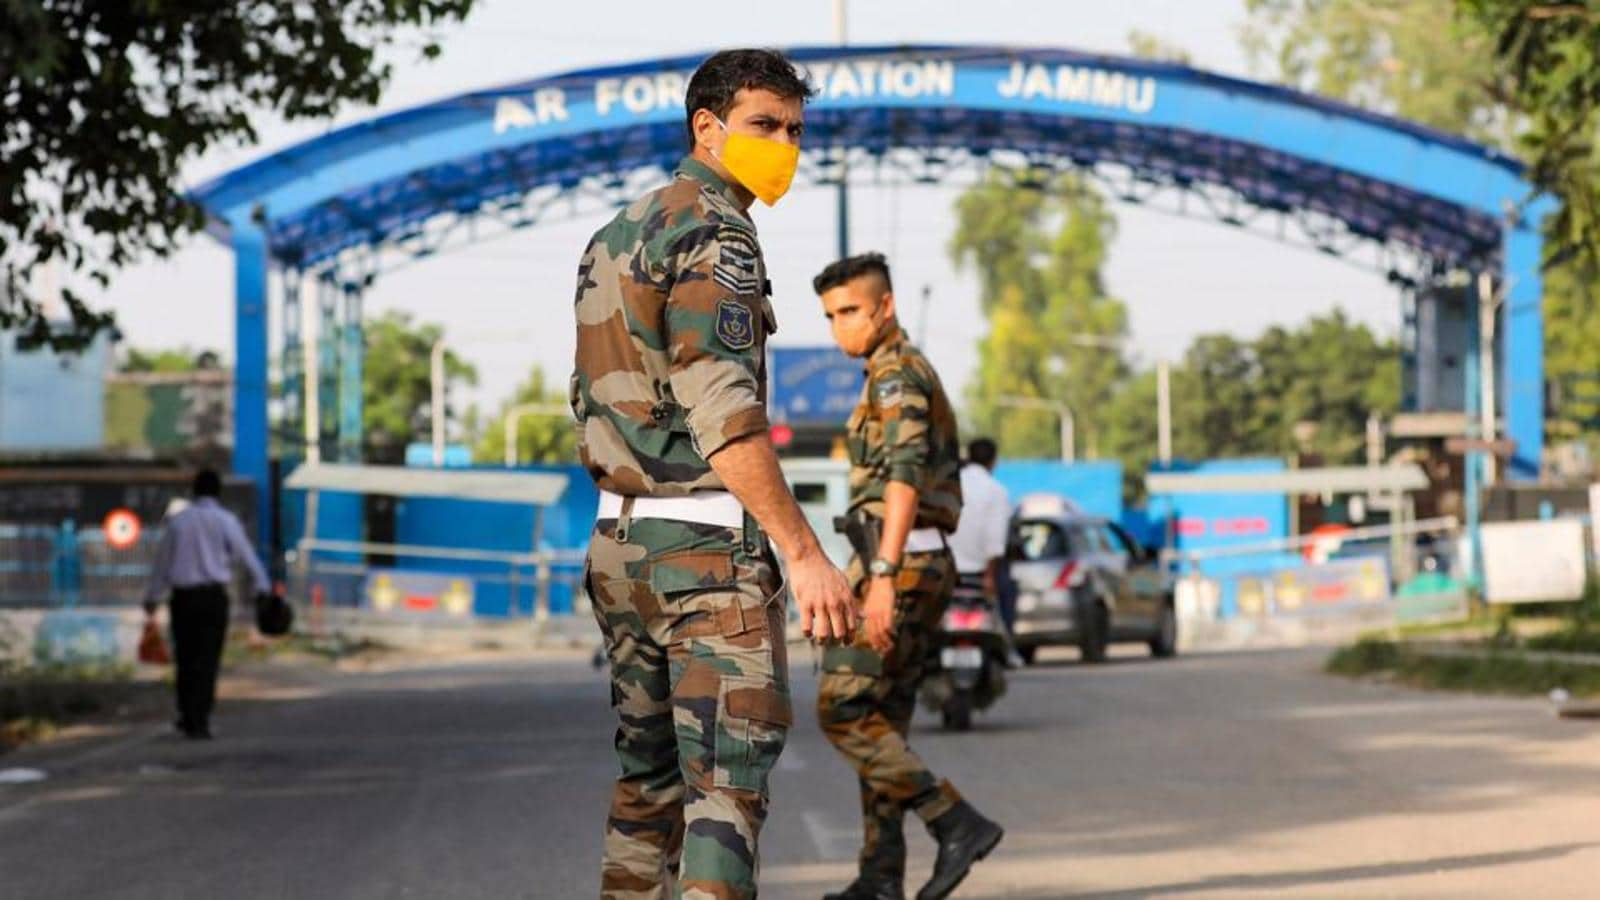 2 blasts rock Indian Air Force's highly secured technical airport in Jammu  | Latest News India - Hindustan Times